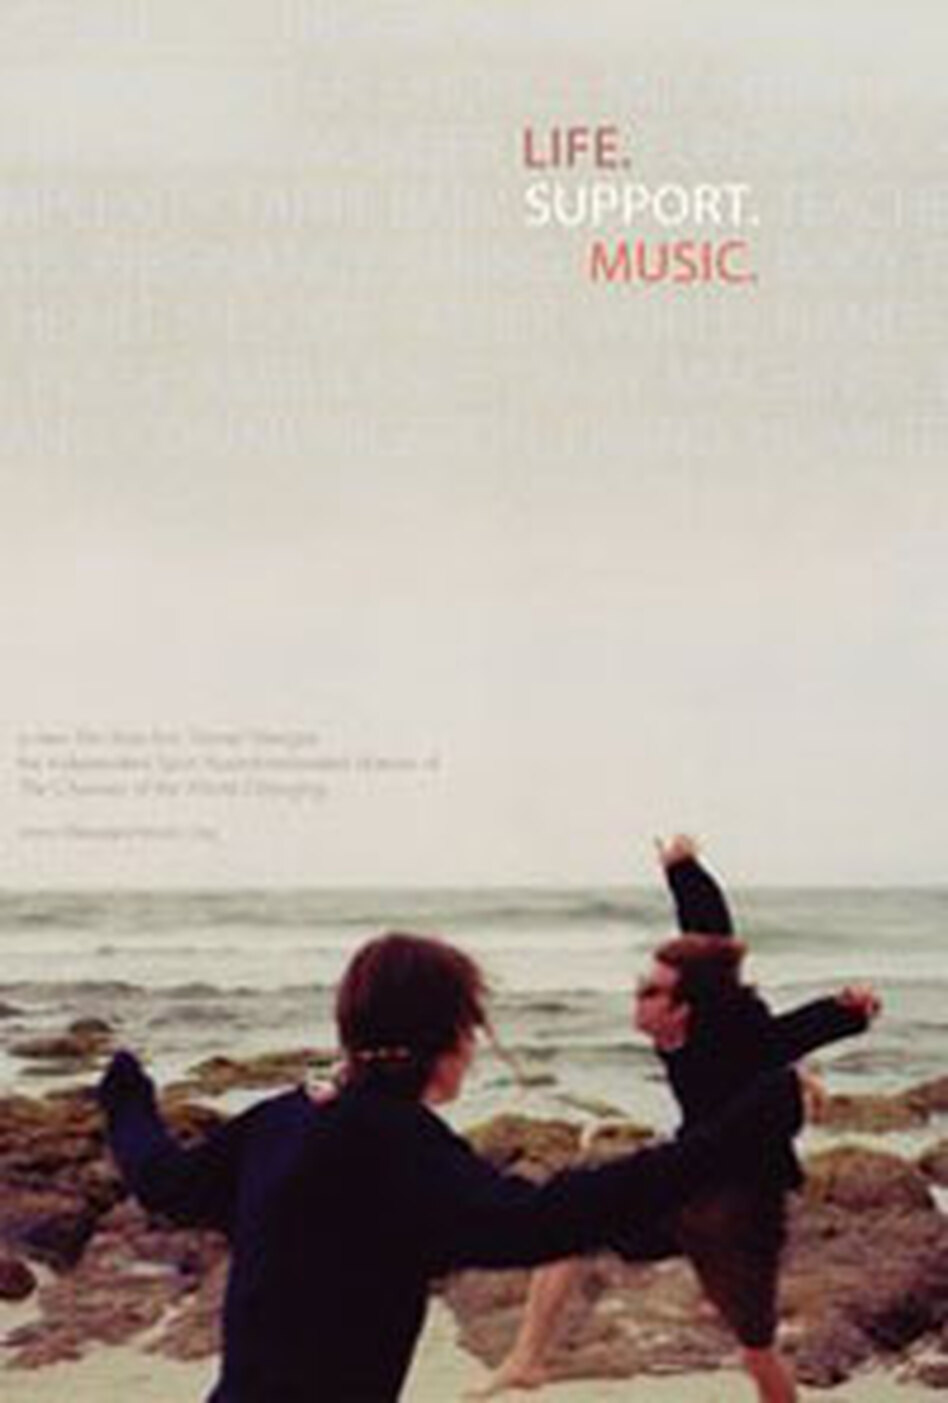 <em>Life. Support. Music,</em> directed by Eric Daniel Metzgar, documents Jason Crigler's recovery.